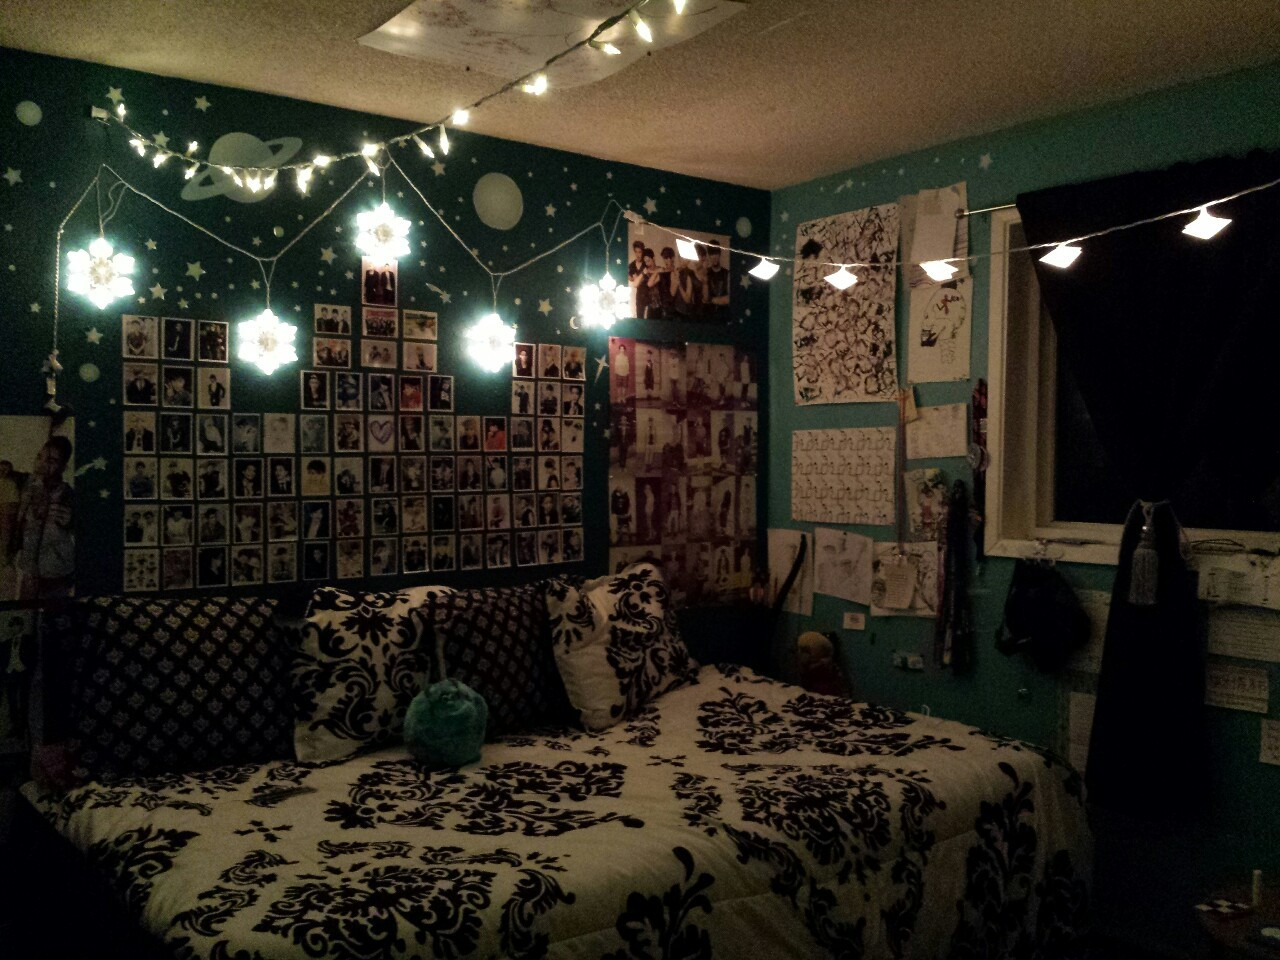 Kpop Bedroom Tumblr Kpop Bedroom Ideas If You Have Little Spaces